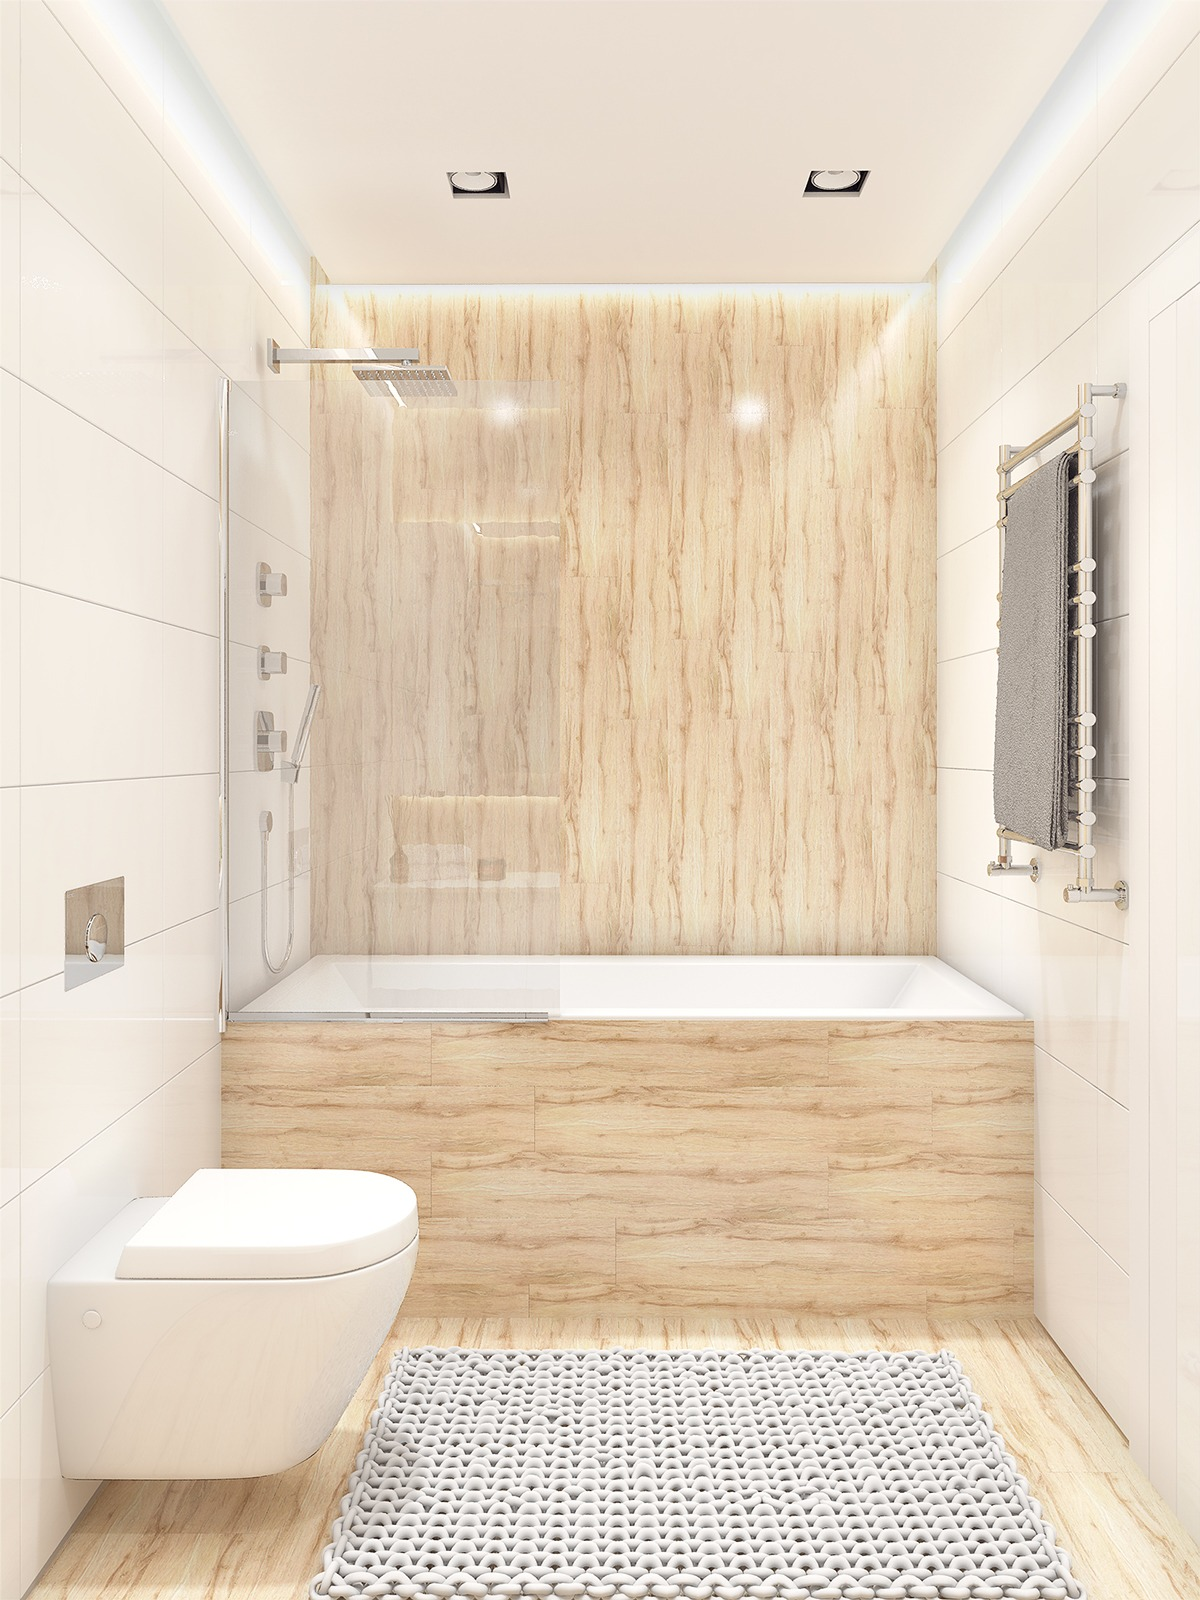 Simple Tiled Bathroom - Similarly simple designs with a bright and cheerful tone